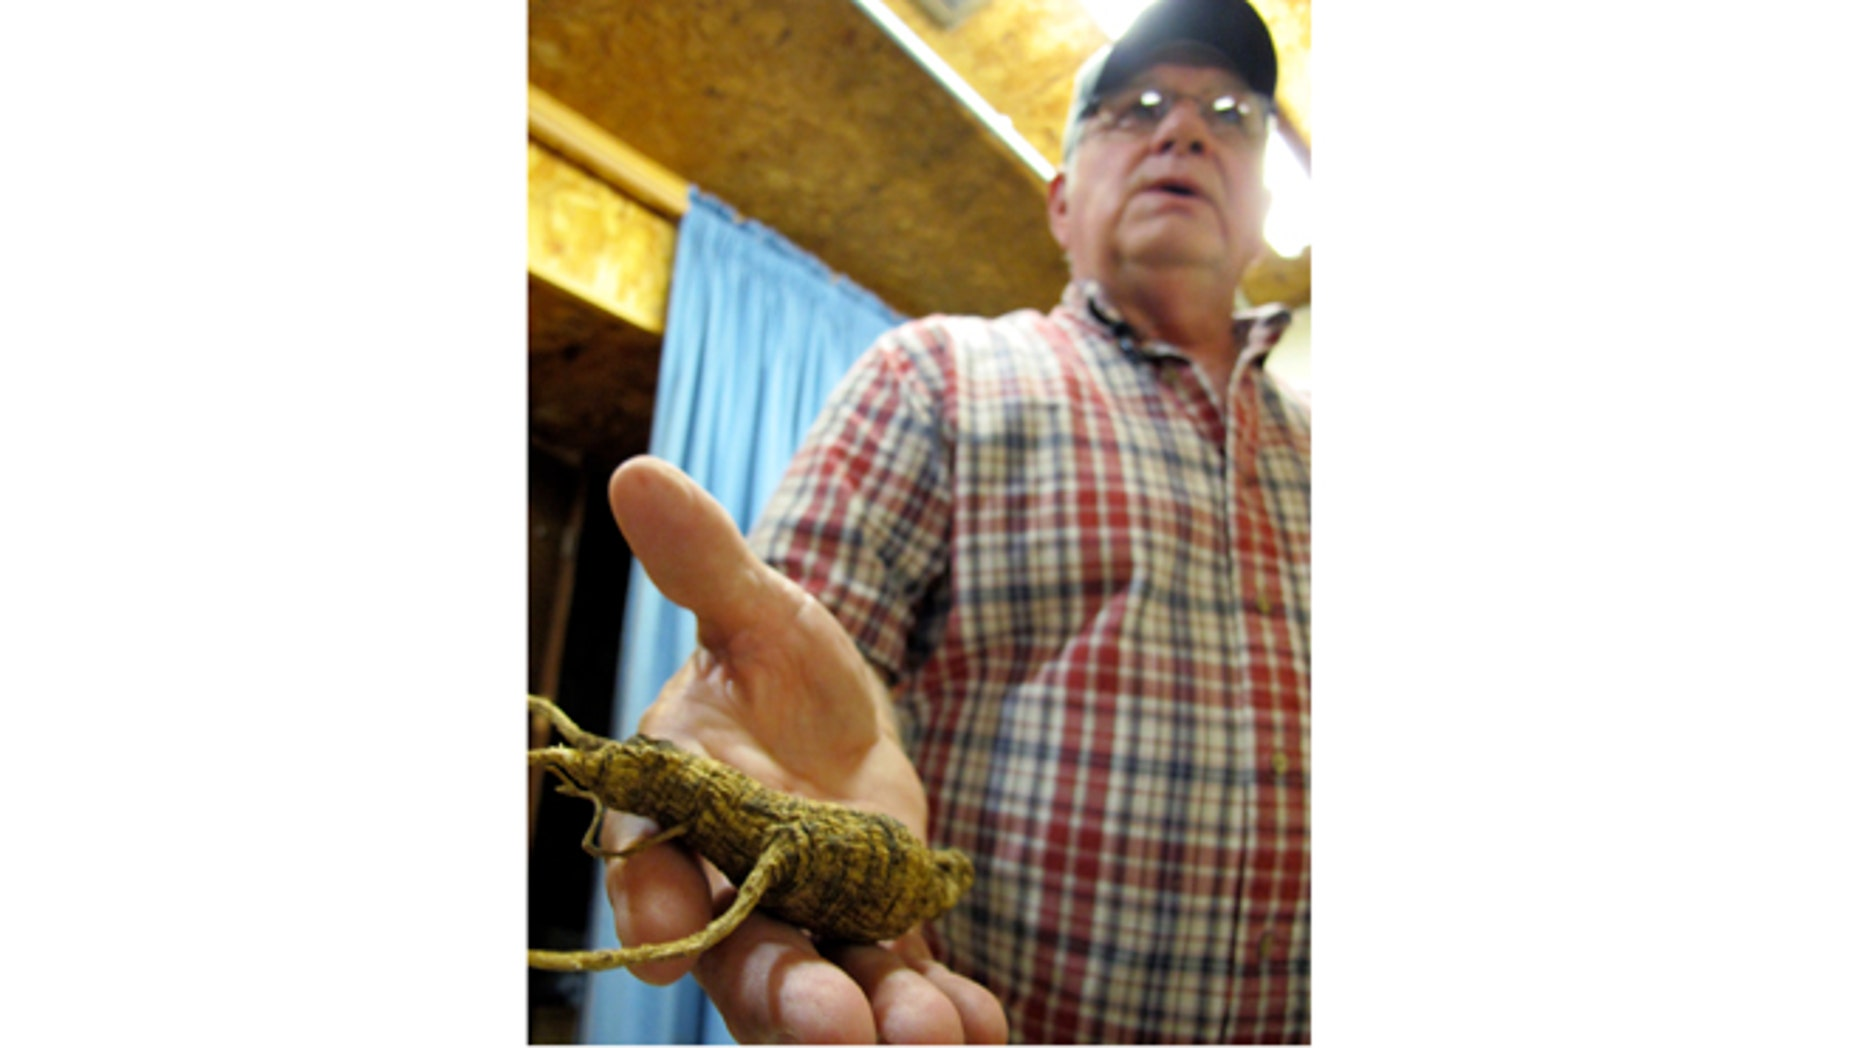 As ginseng prices soar, diggers take to the backcountry